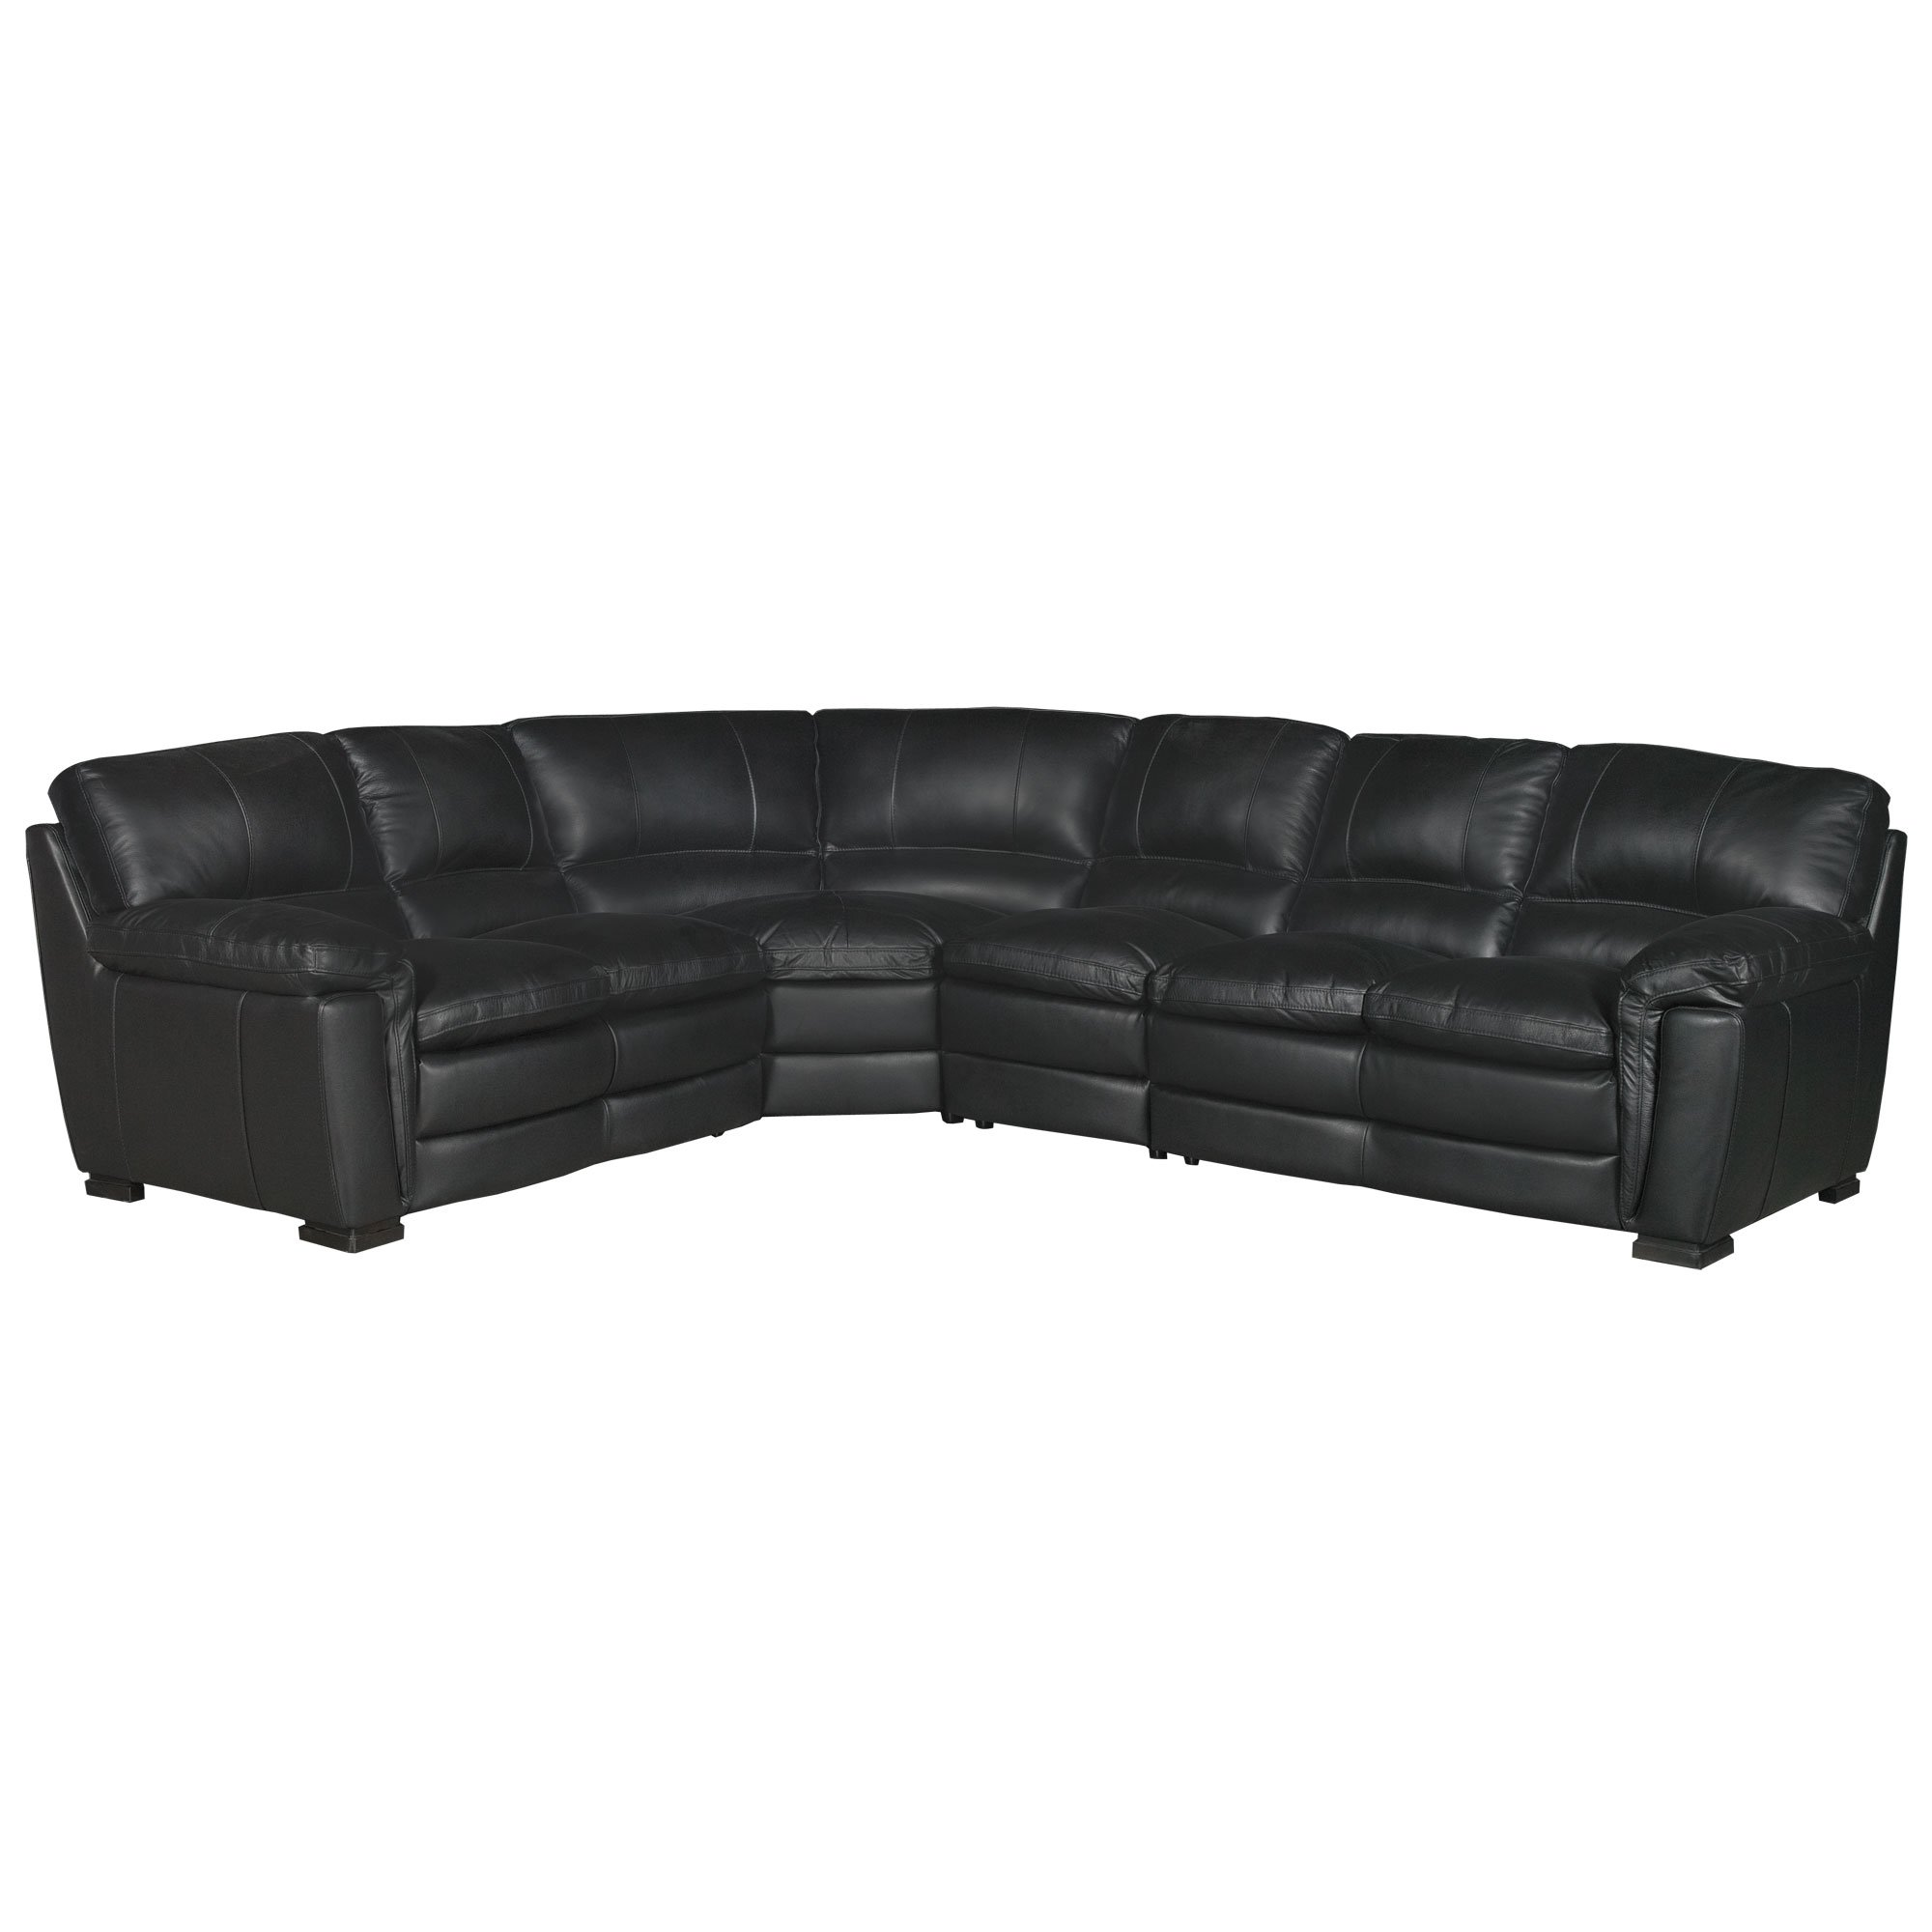 Contemporary 4 Piece Black Leather Sectional Sofa - Tanner